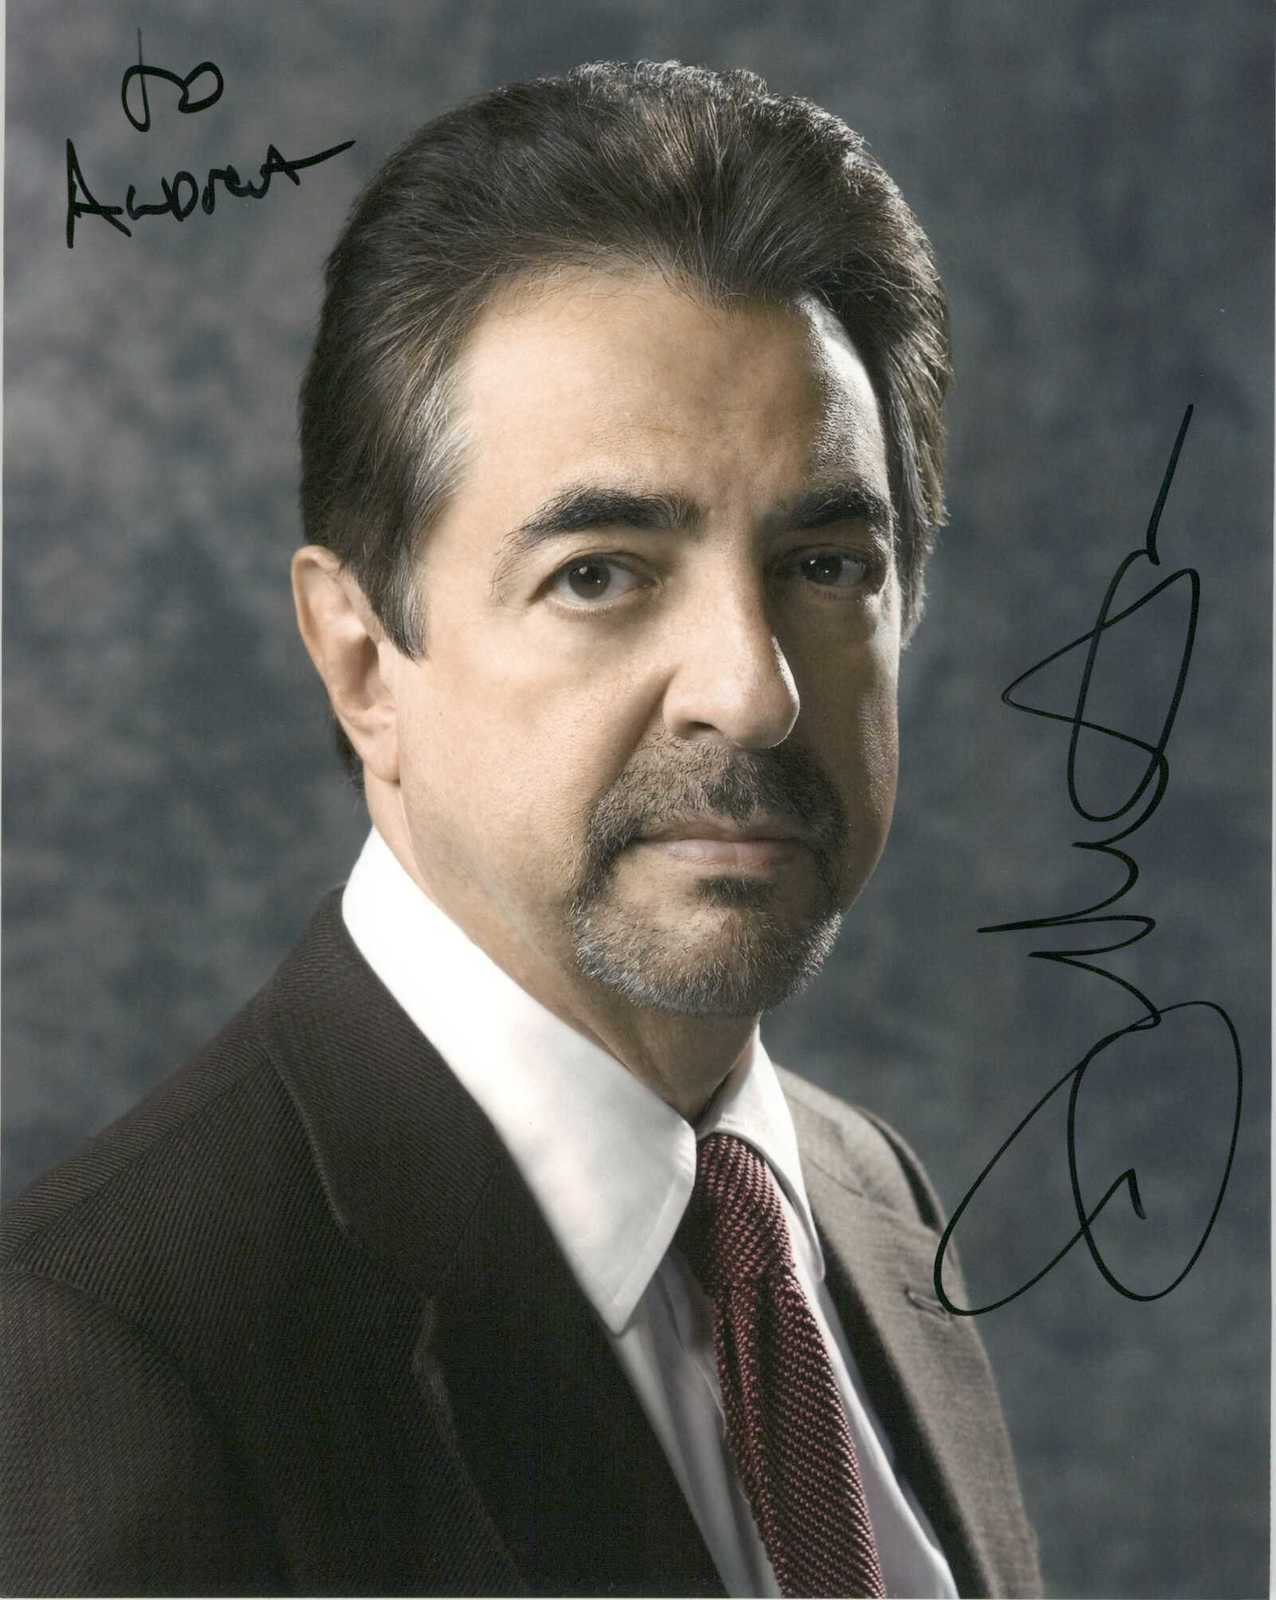 Primary image for Joe Mantegna Signed Autographed Glossy 8x10 Photo